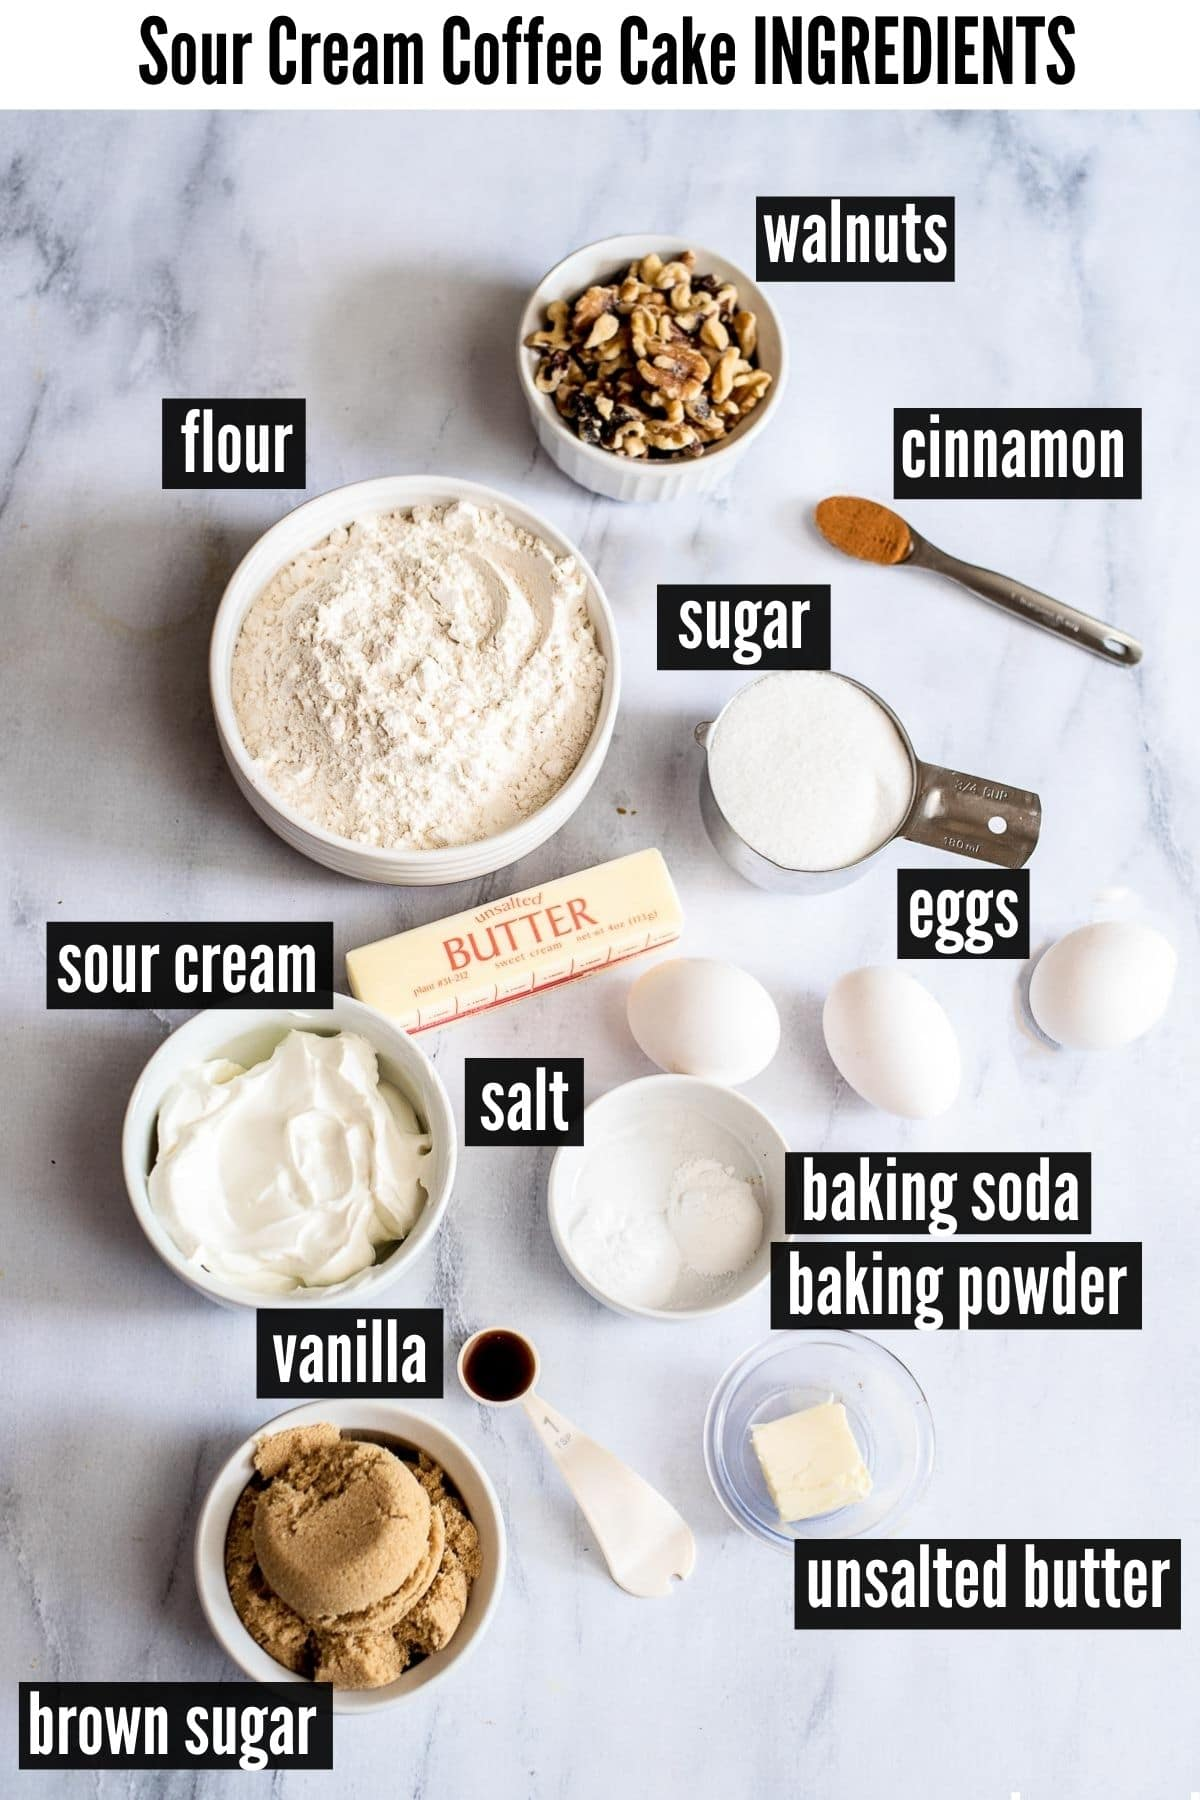 sour cream coffee cake ingredients